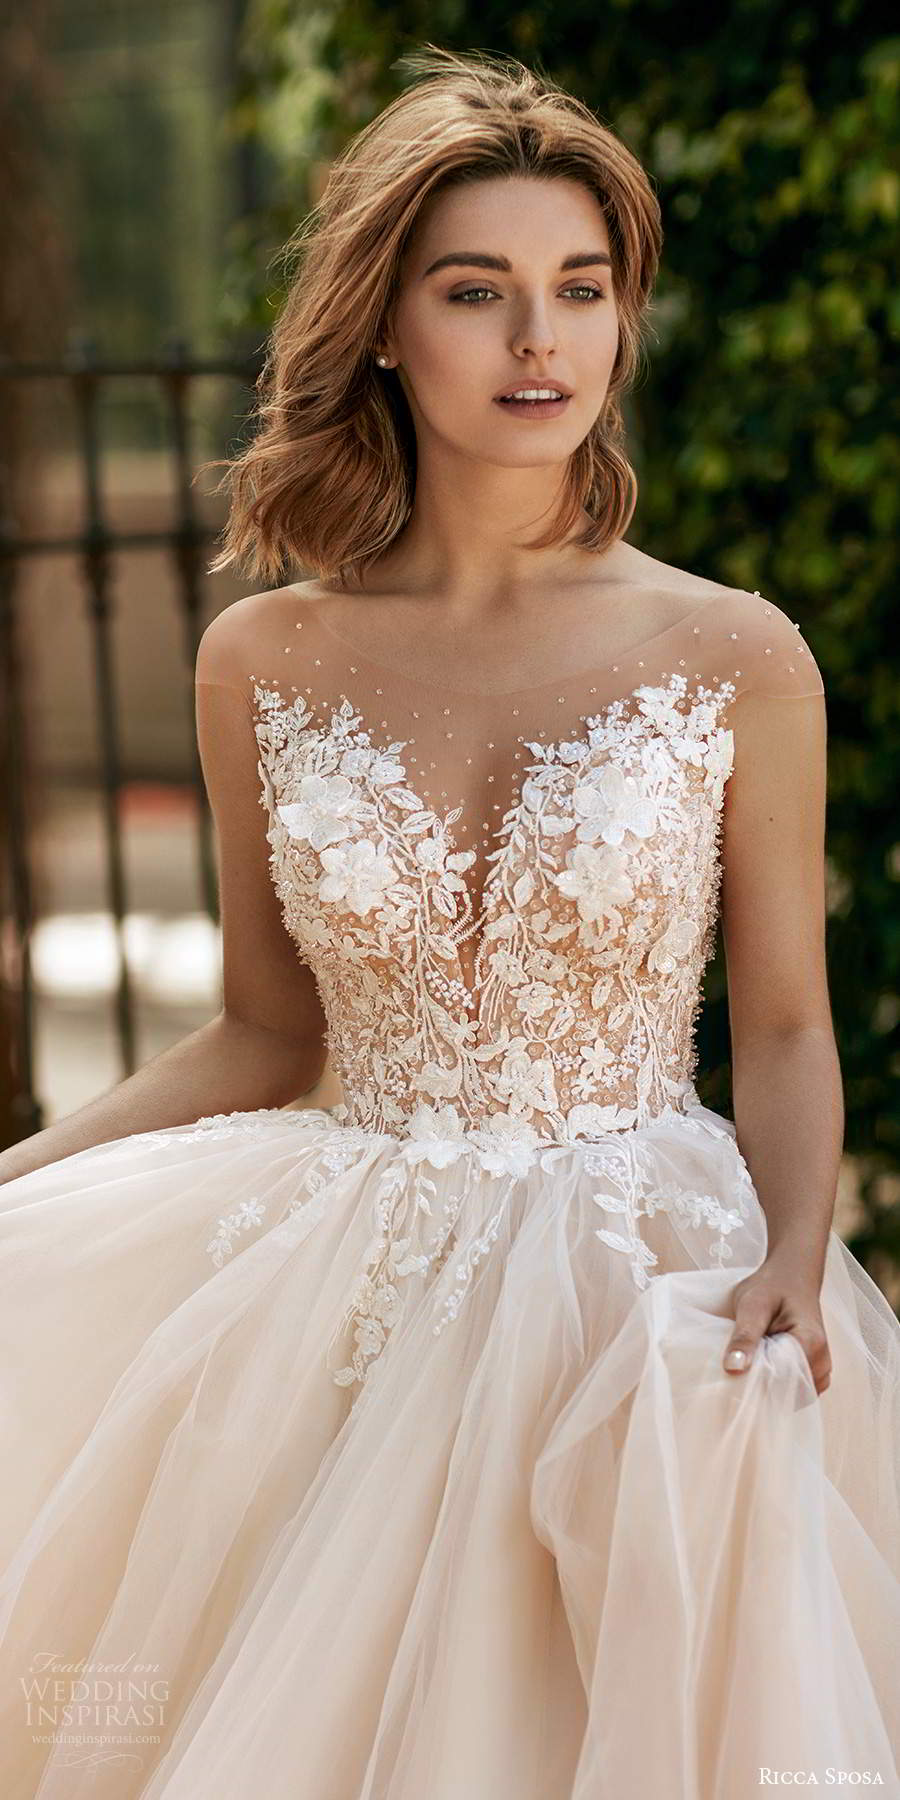 ricca sposa 2020 barcelona bridal illusion cap sleeves sheer bateau sweetheart neckline heavily embellished bodice ball gown wedding dress sheer back chapel train (14) zv